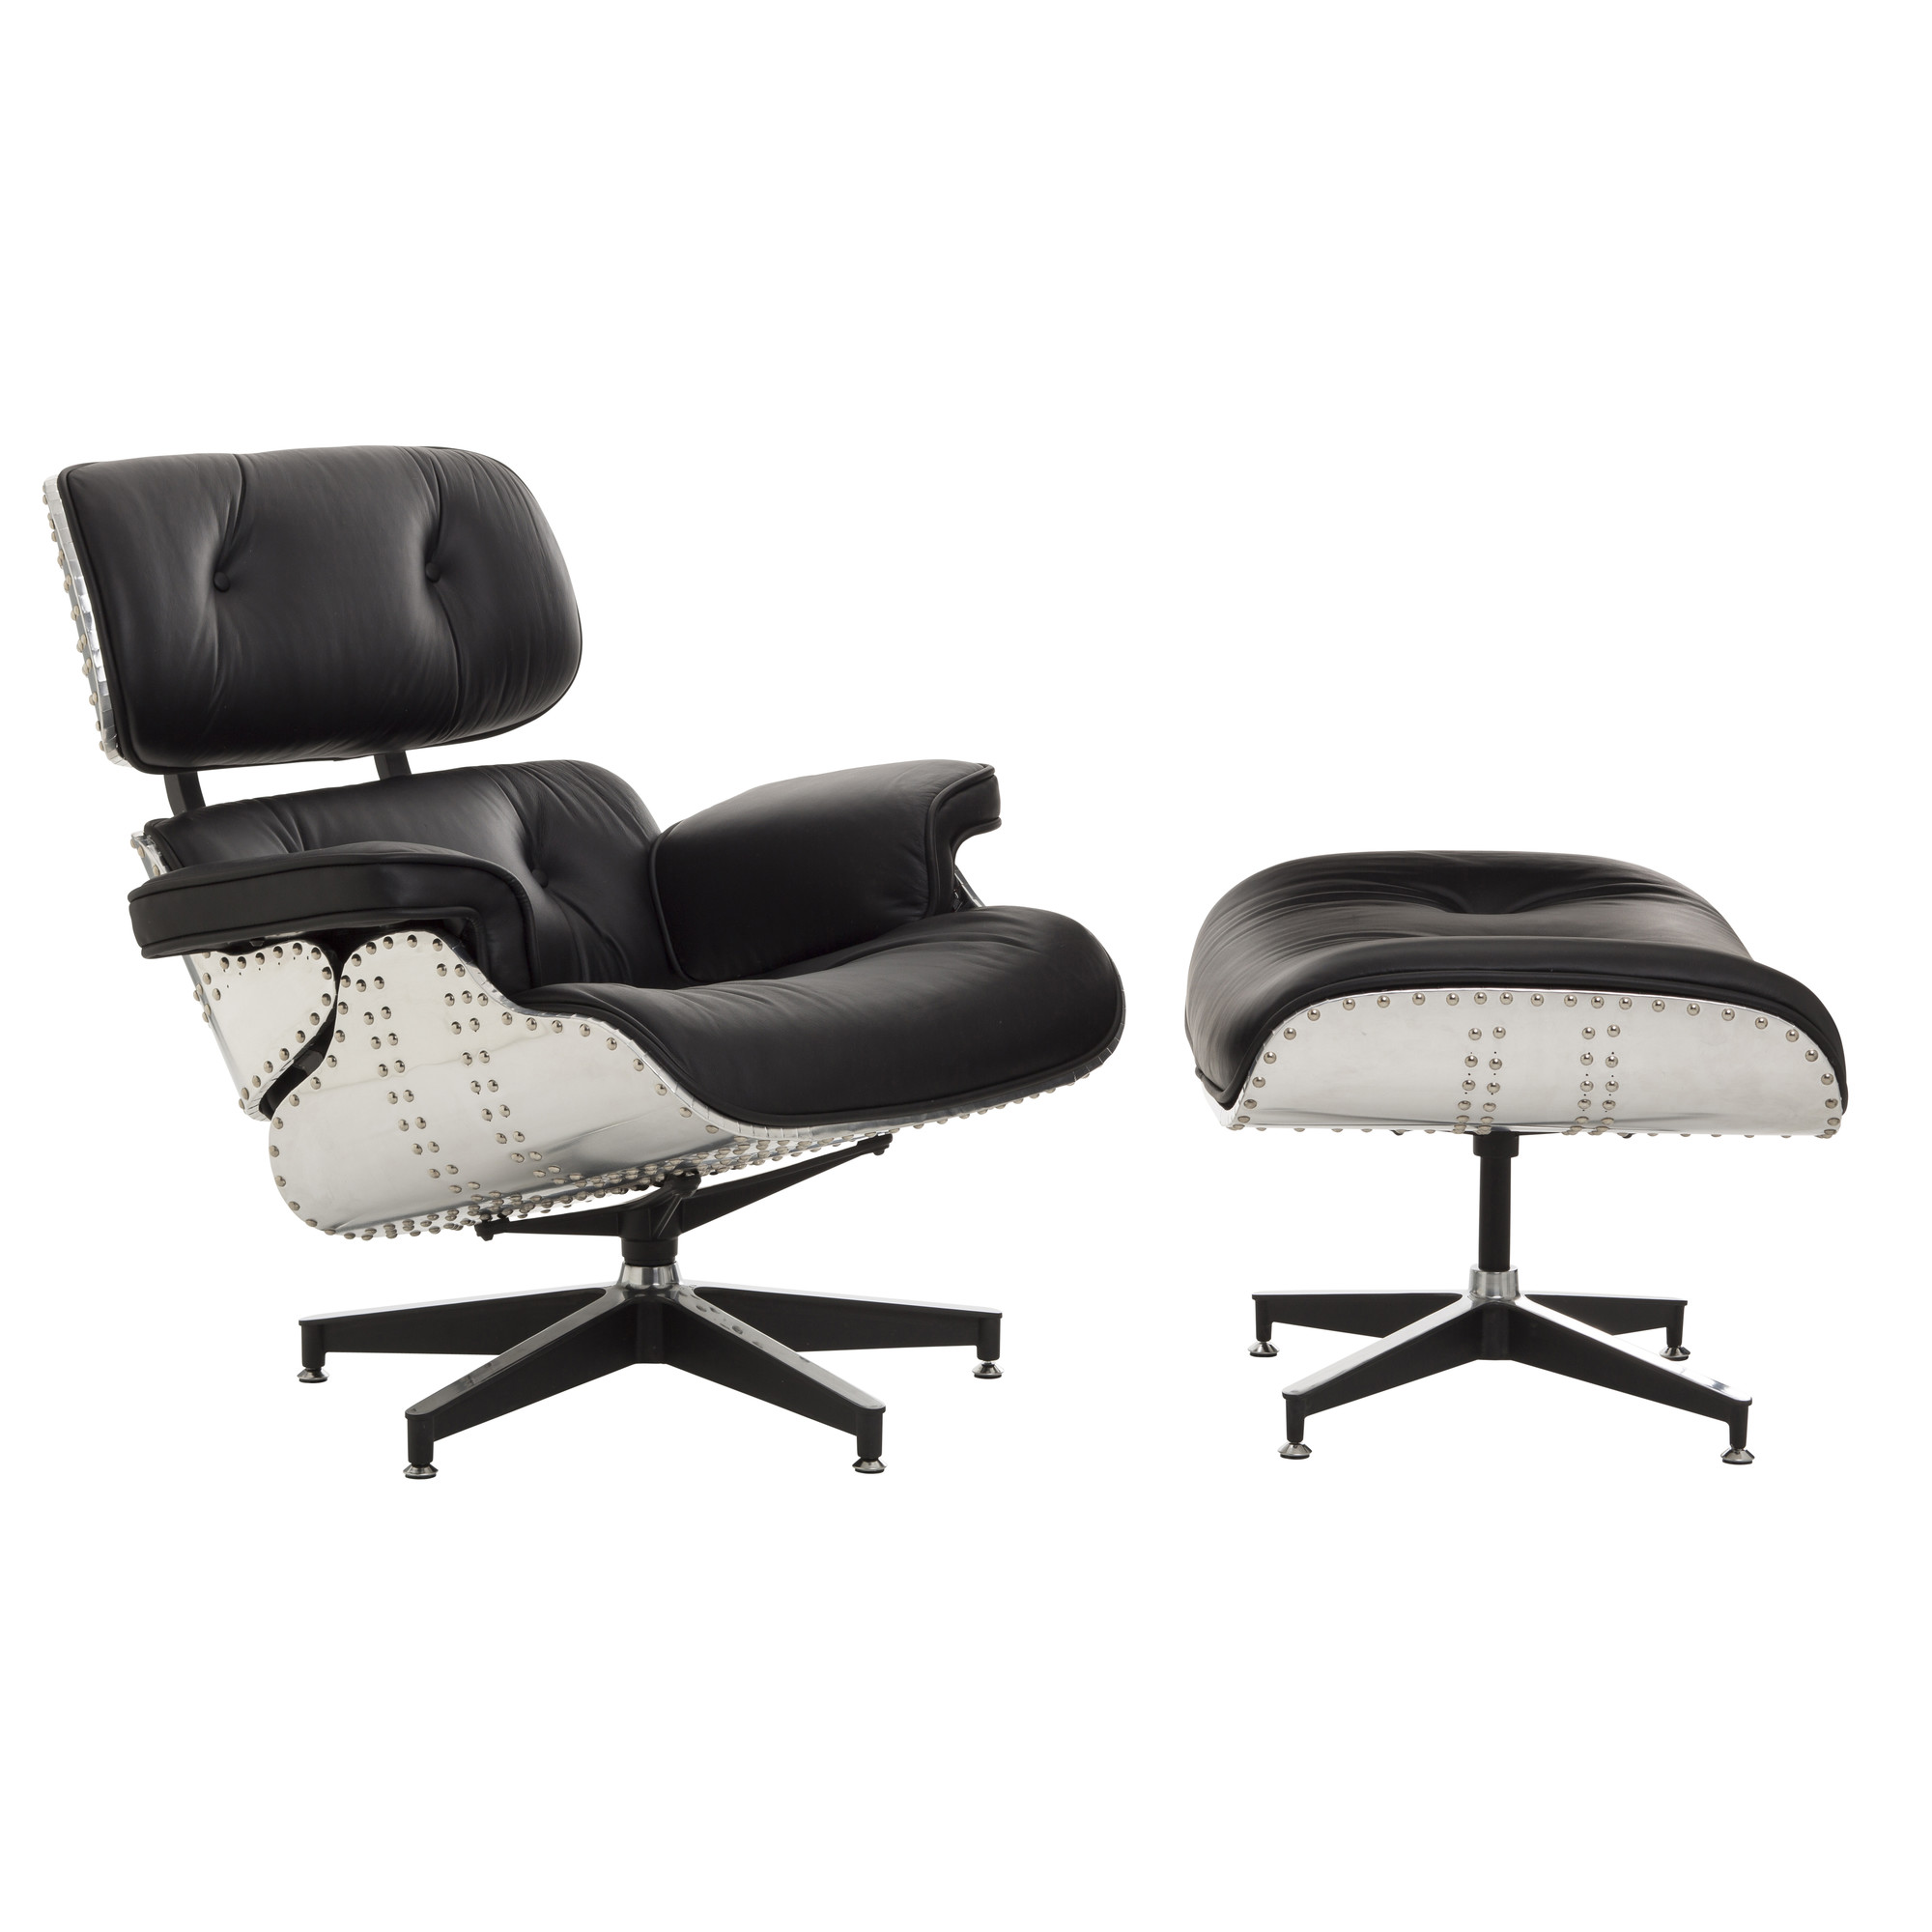 New eames replica aluminium lounge chair ottoman ebay for Lounge chair replica erfahrungen